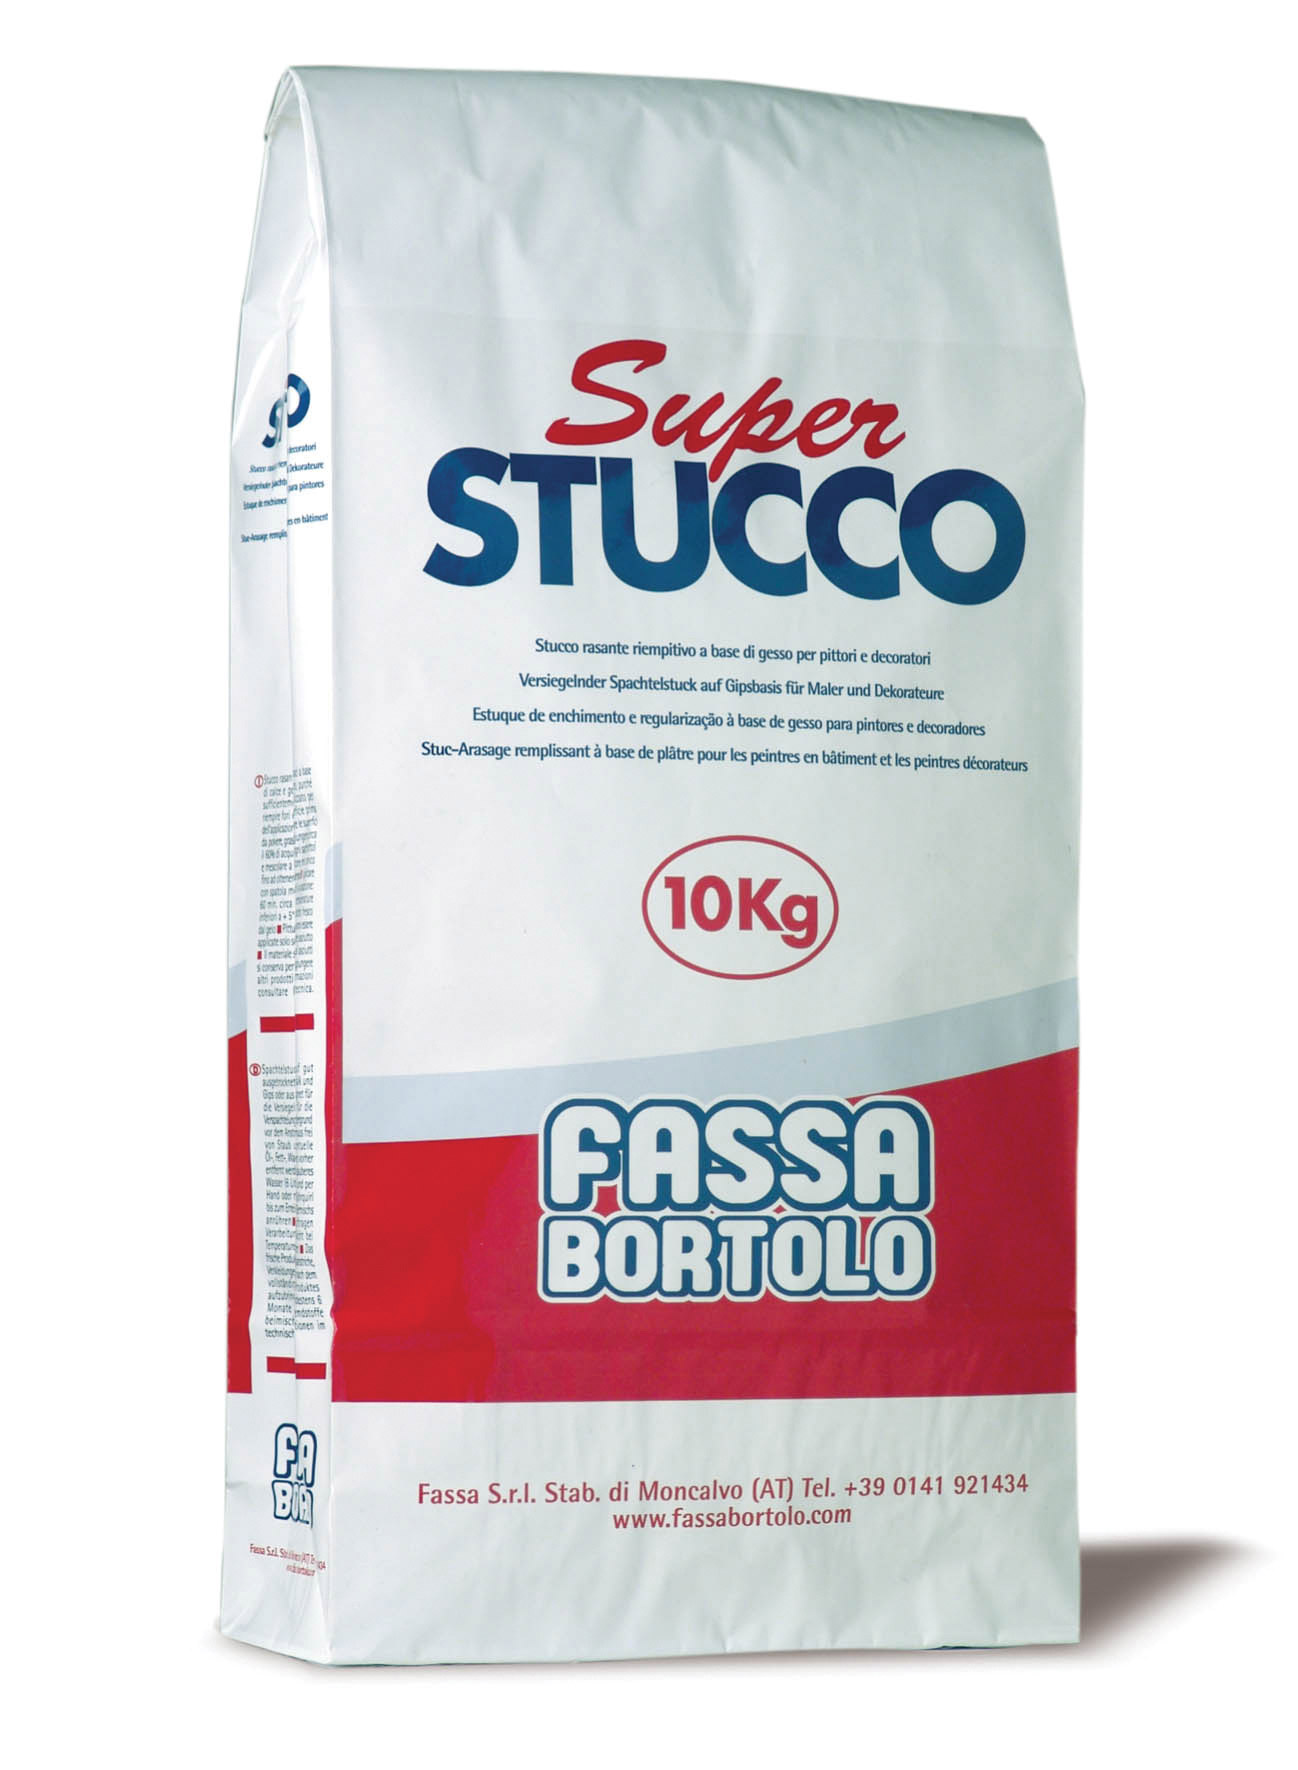 SUPER STUCCO: Estuque regularizador à base de gesso para pintores e decoradores